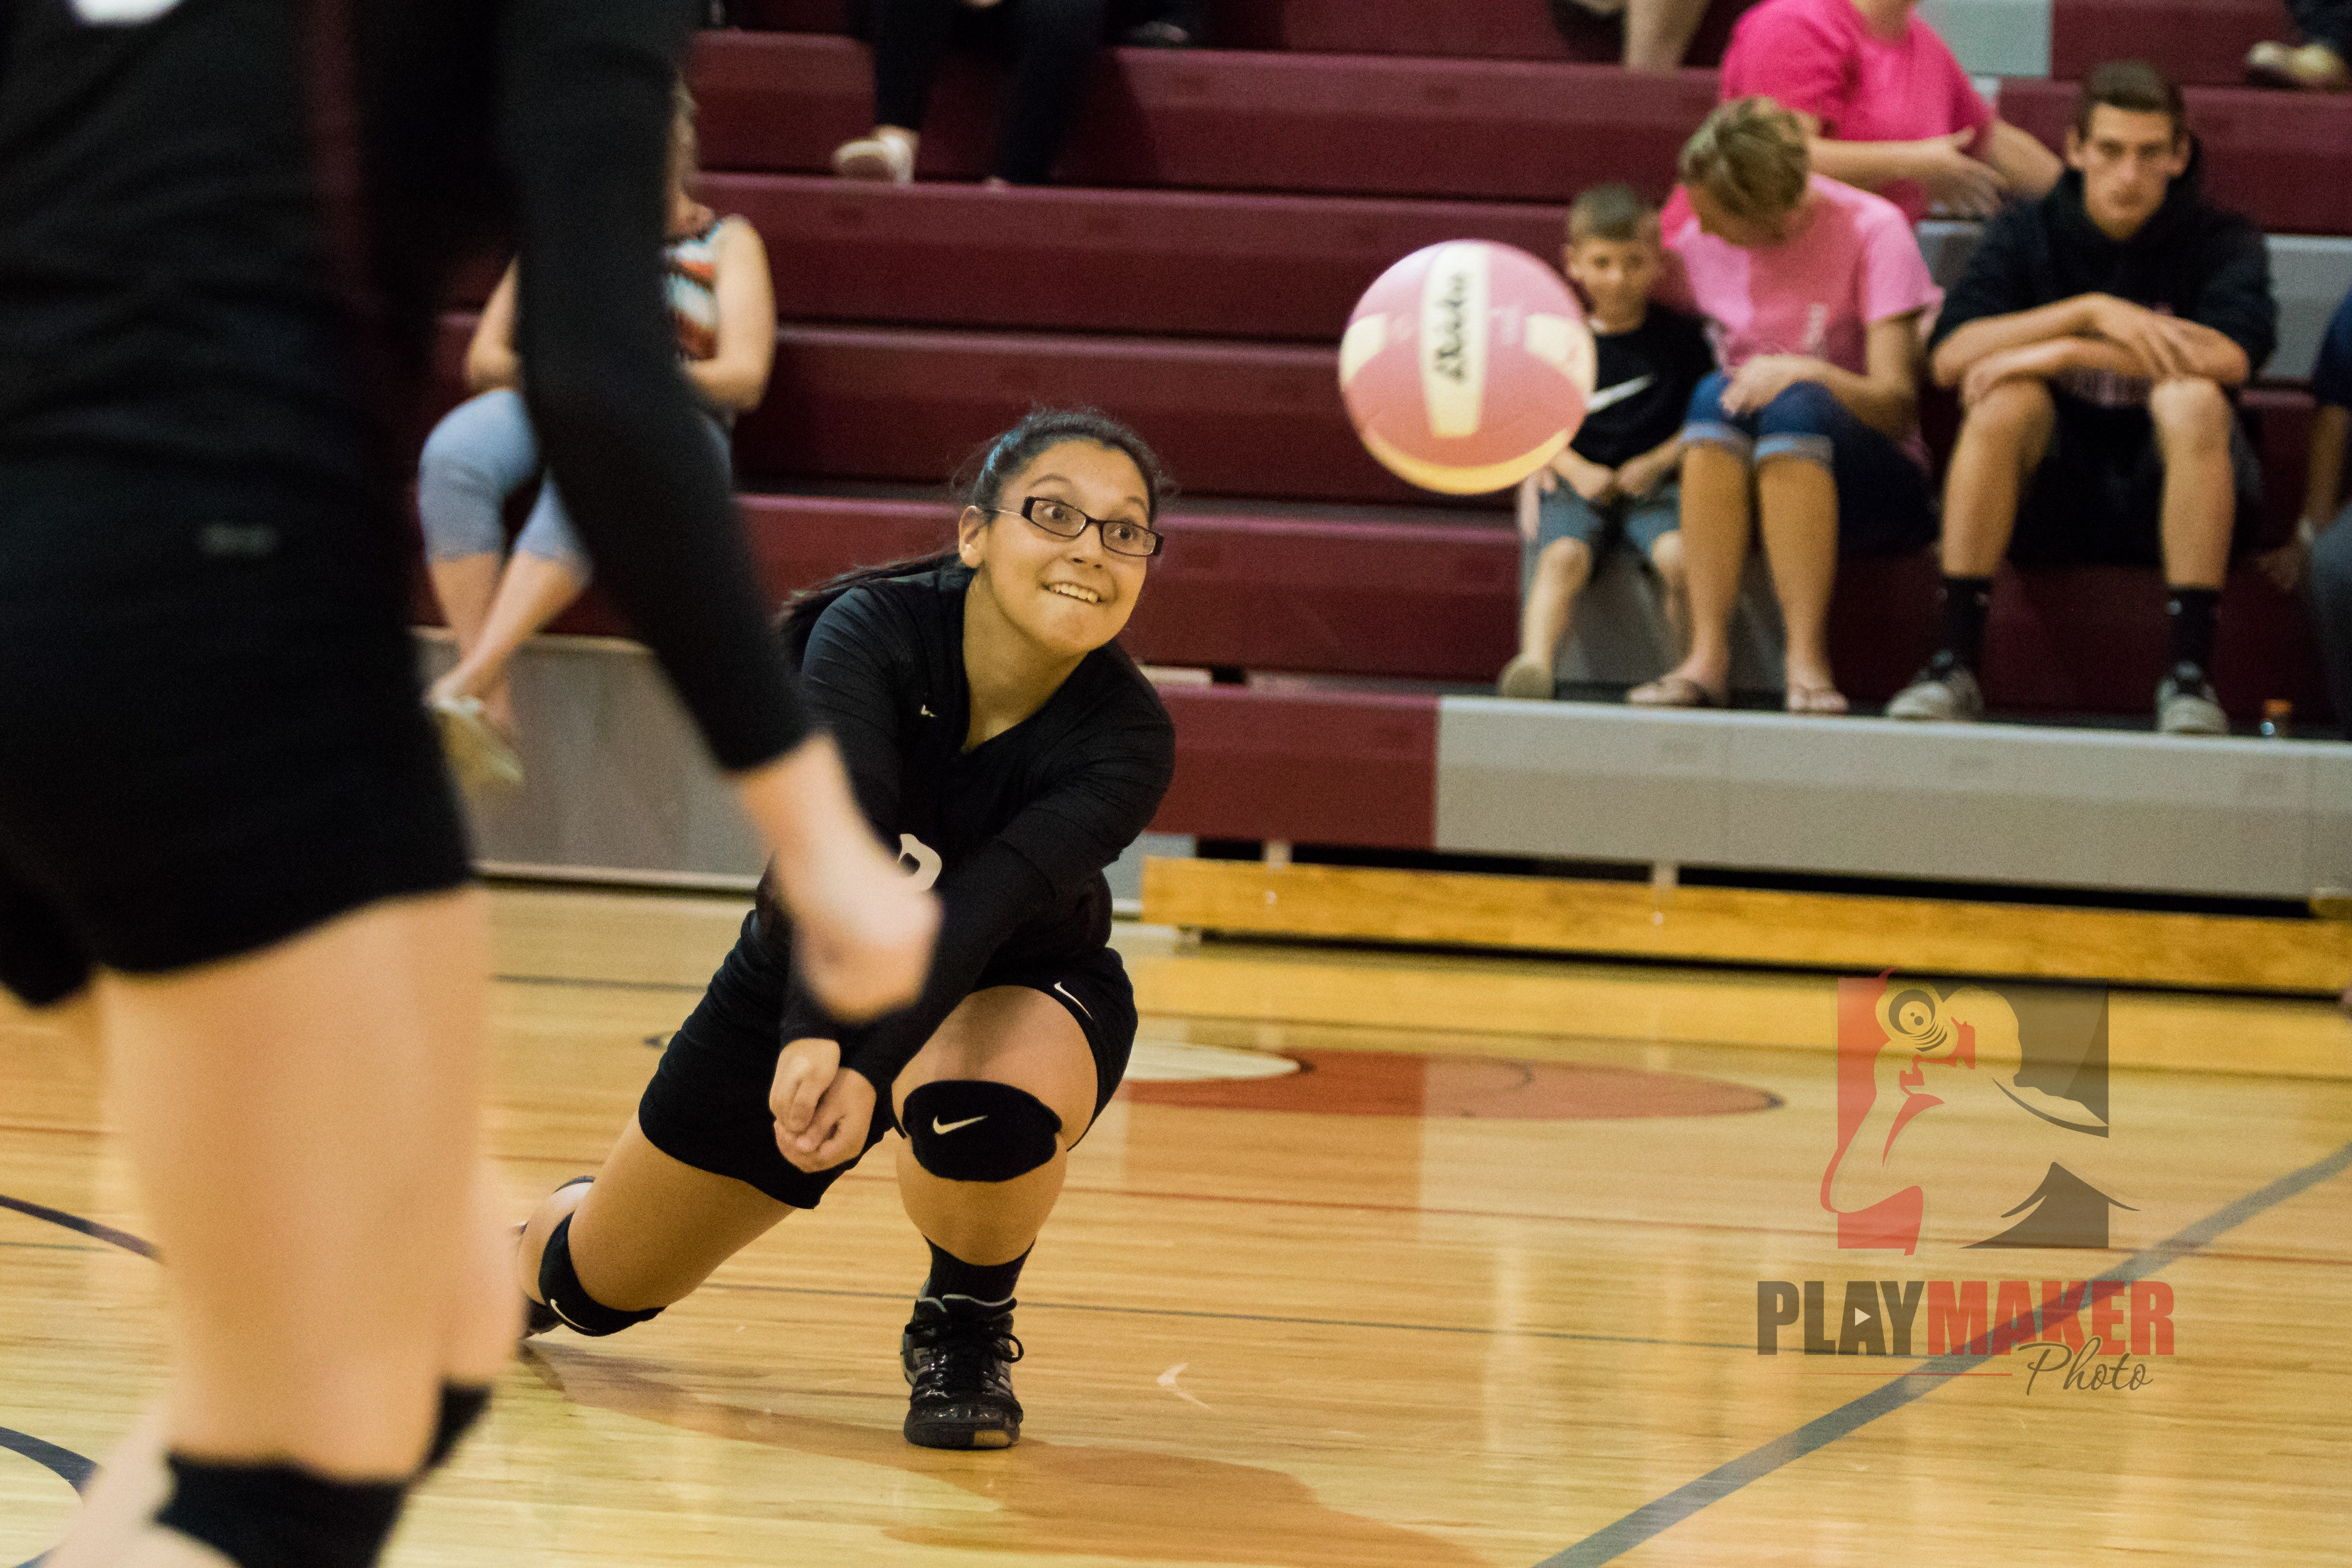 2016 10 06 South Iron High School Jv Volleyball Http Www Playmakerphoto Com 2016 10 06 South Iron Jv High School School Volleyball